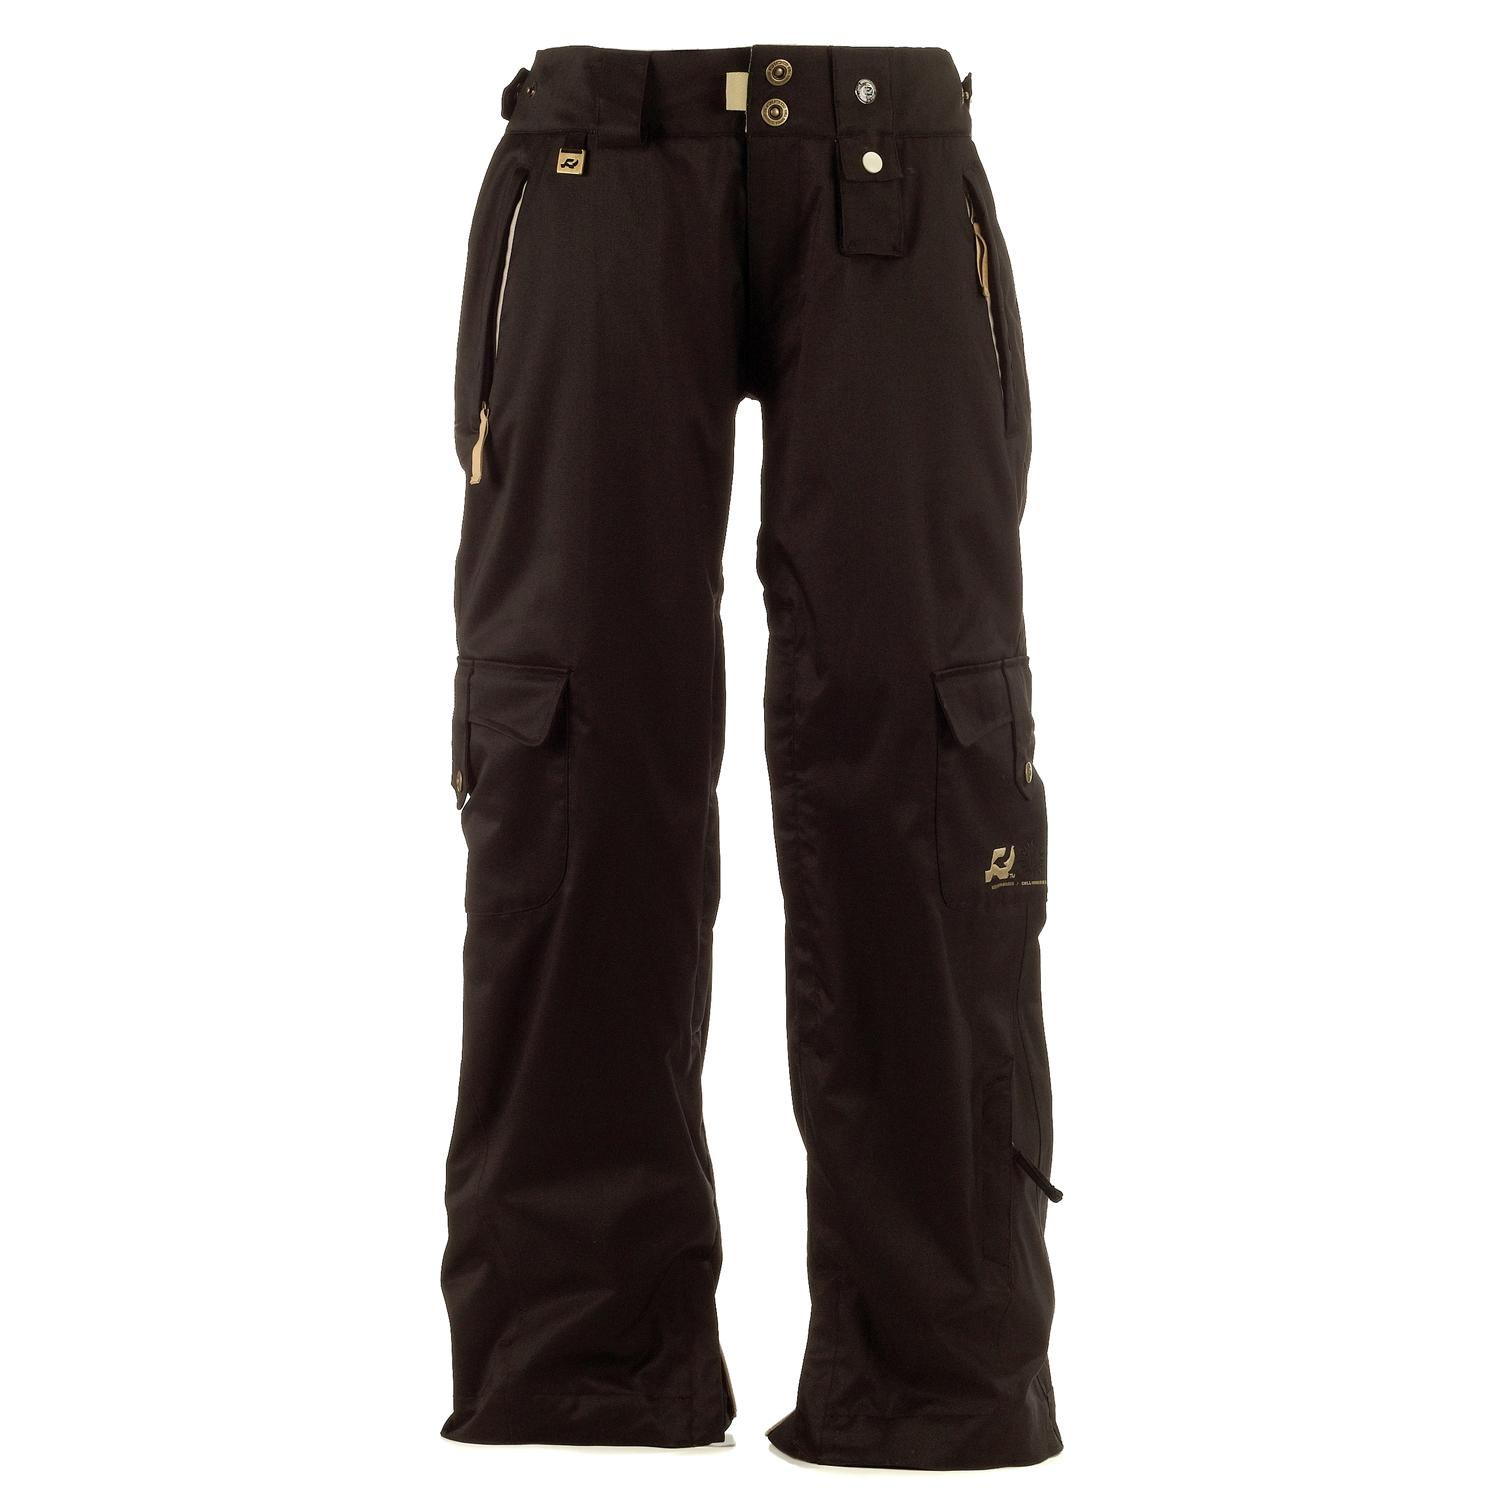 Unique Black Cargo Pants For Women